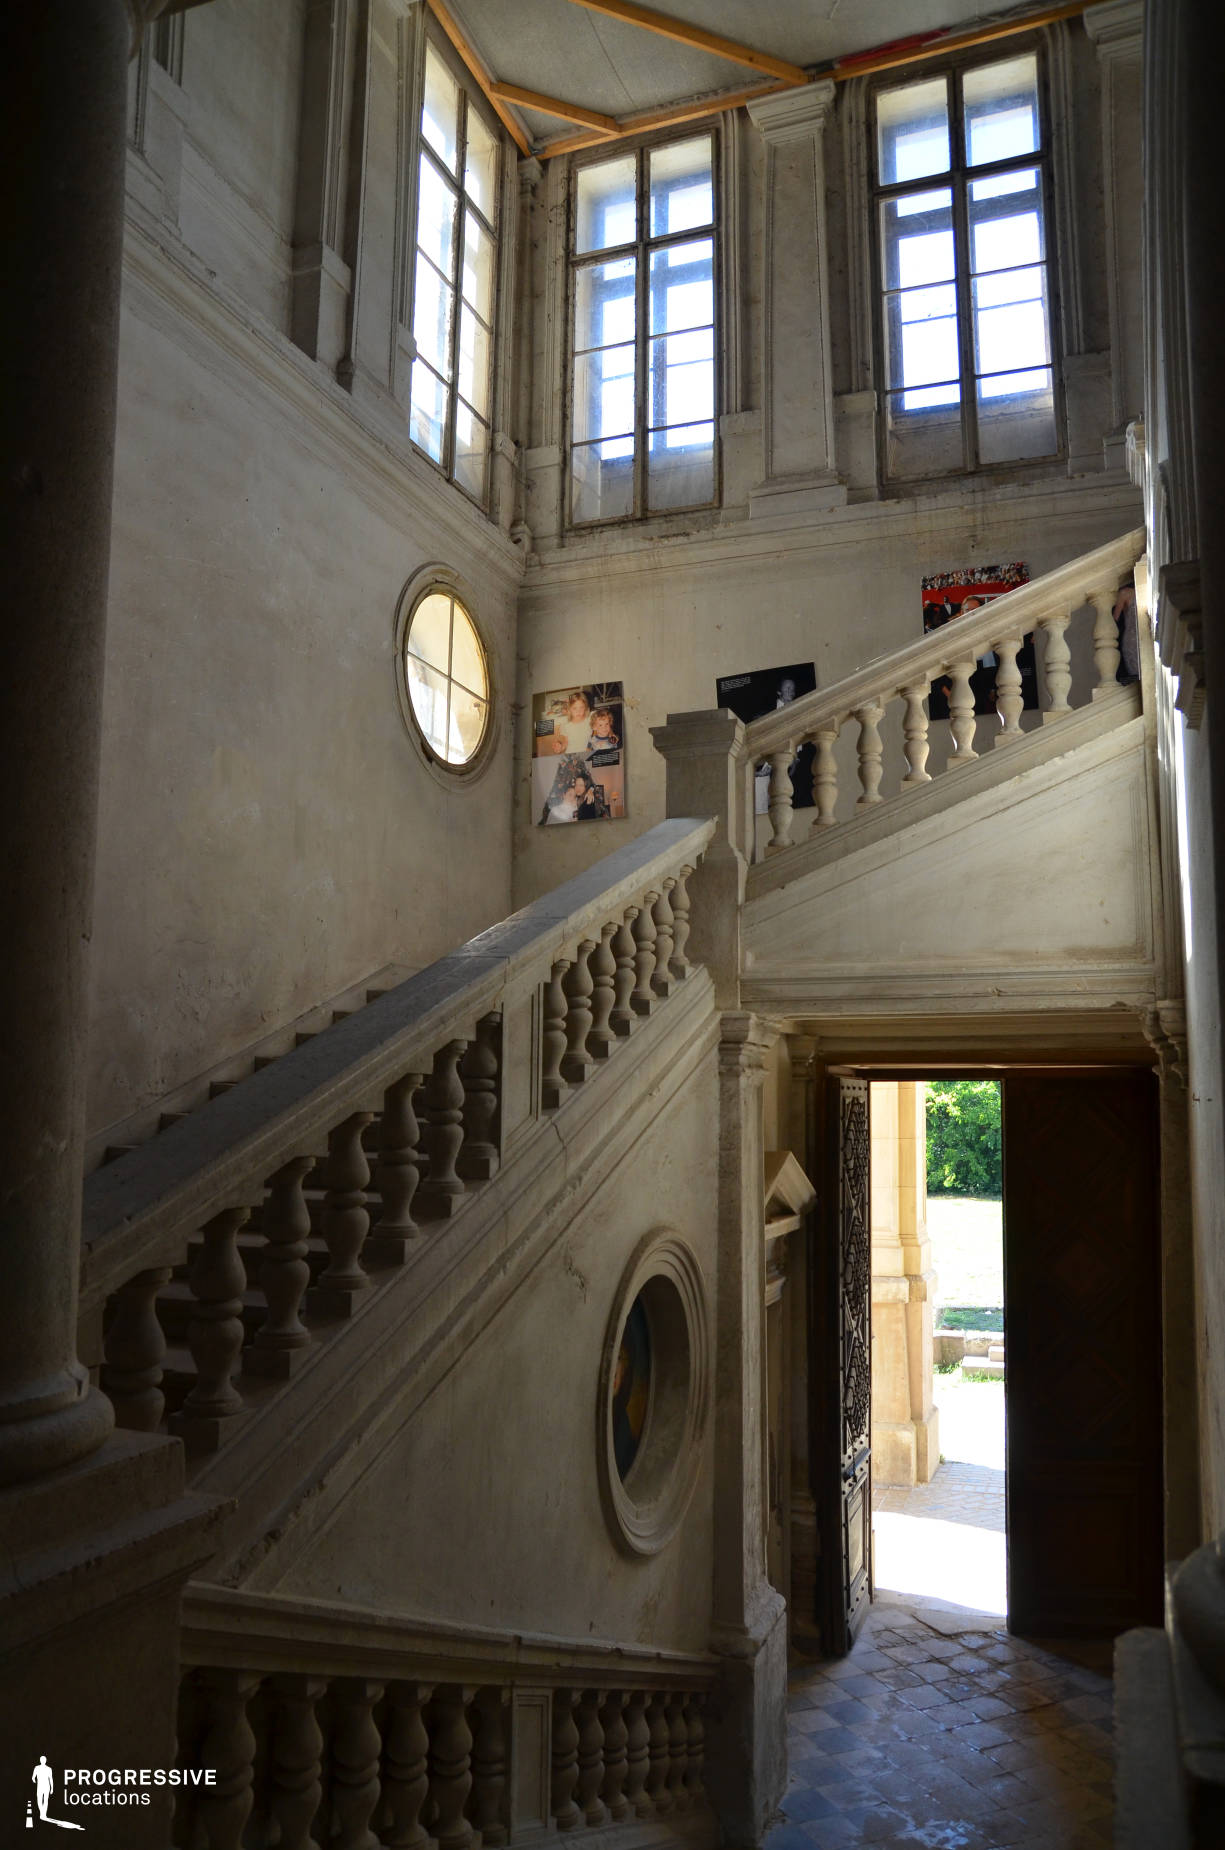 Locations in Hungary: Staircase %26 Round Windows, Tura Castle